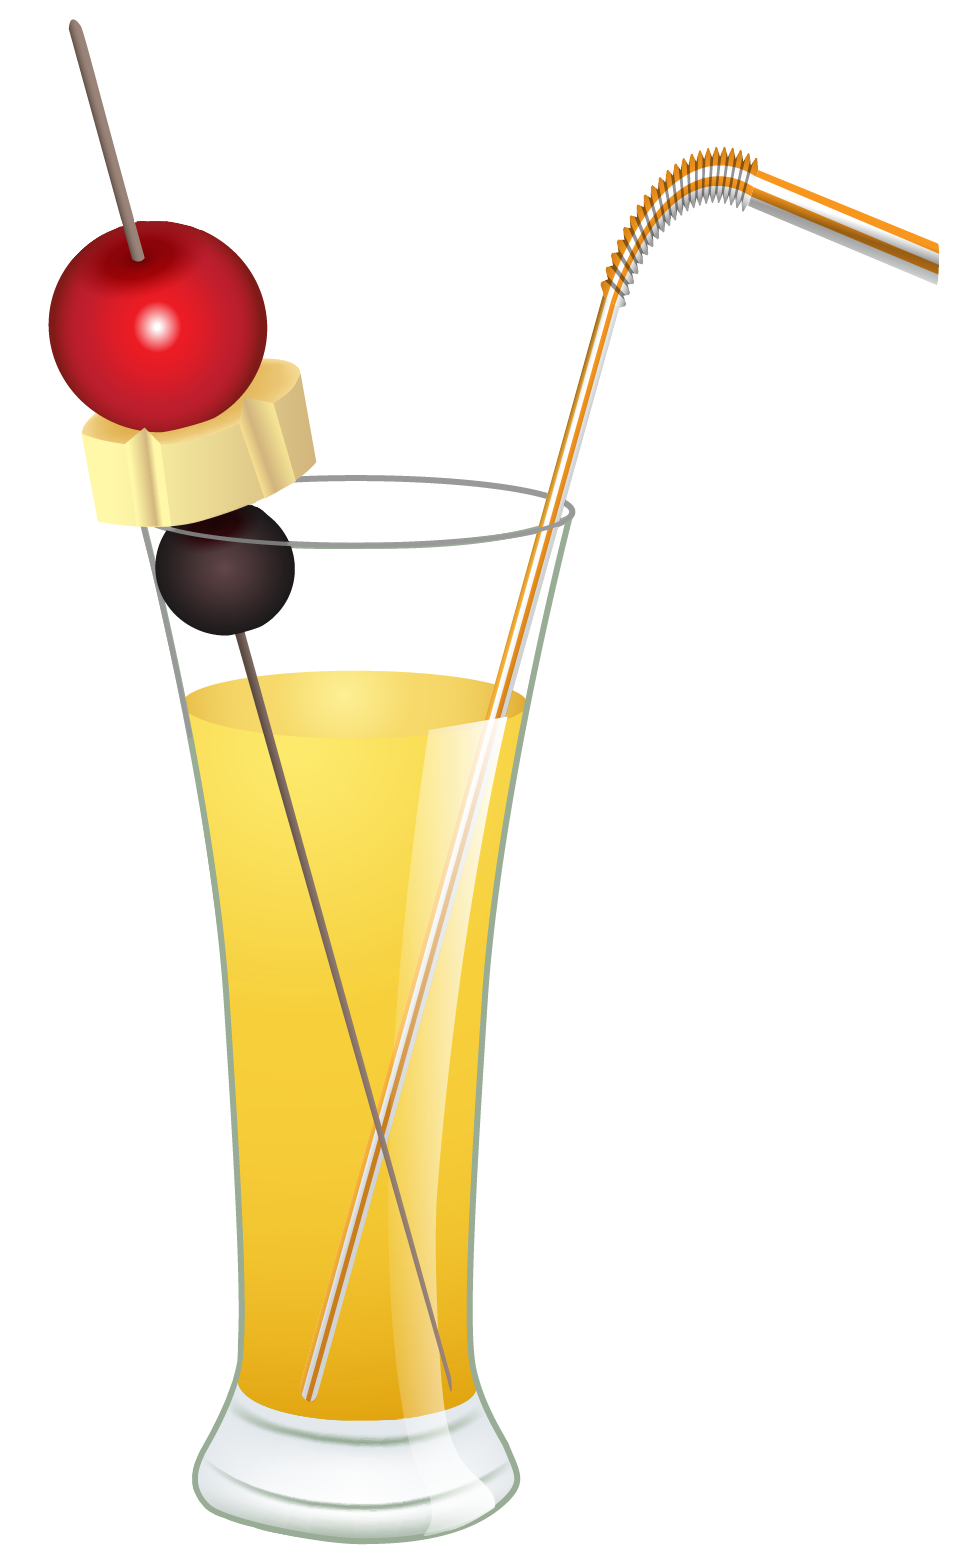 Png image gallery yopriceville. Halloween clipart cocktail